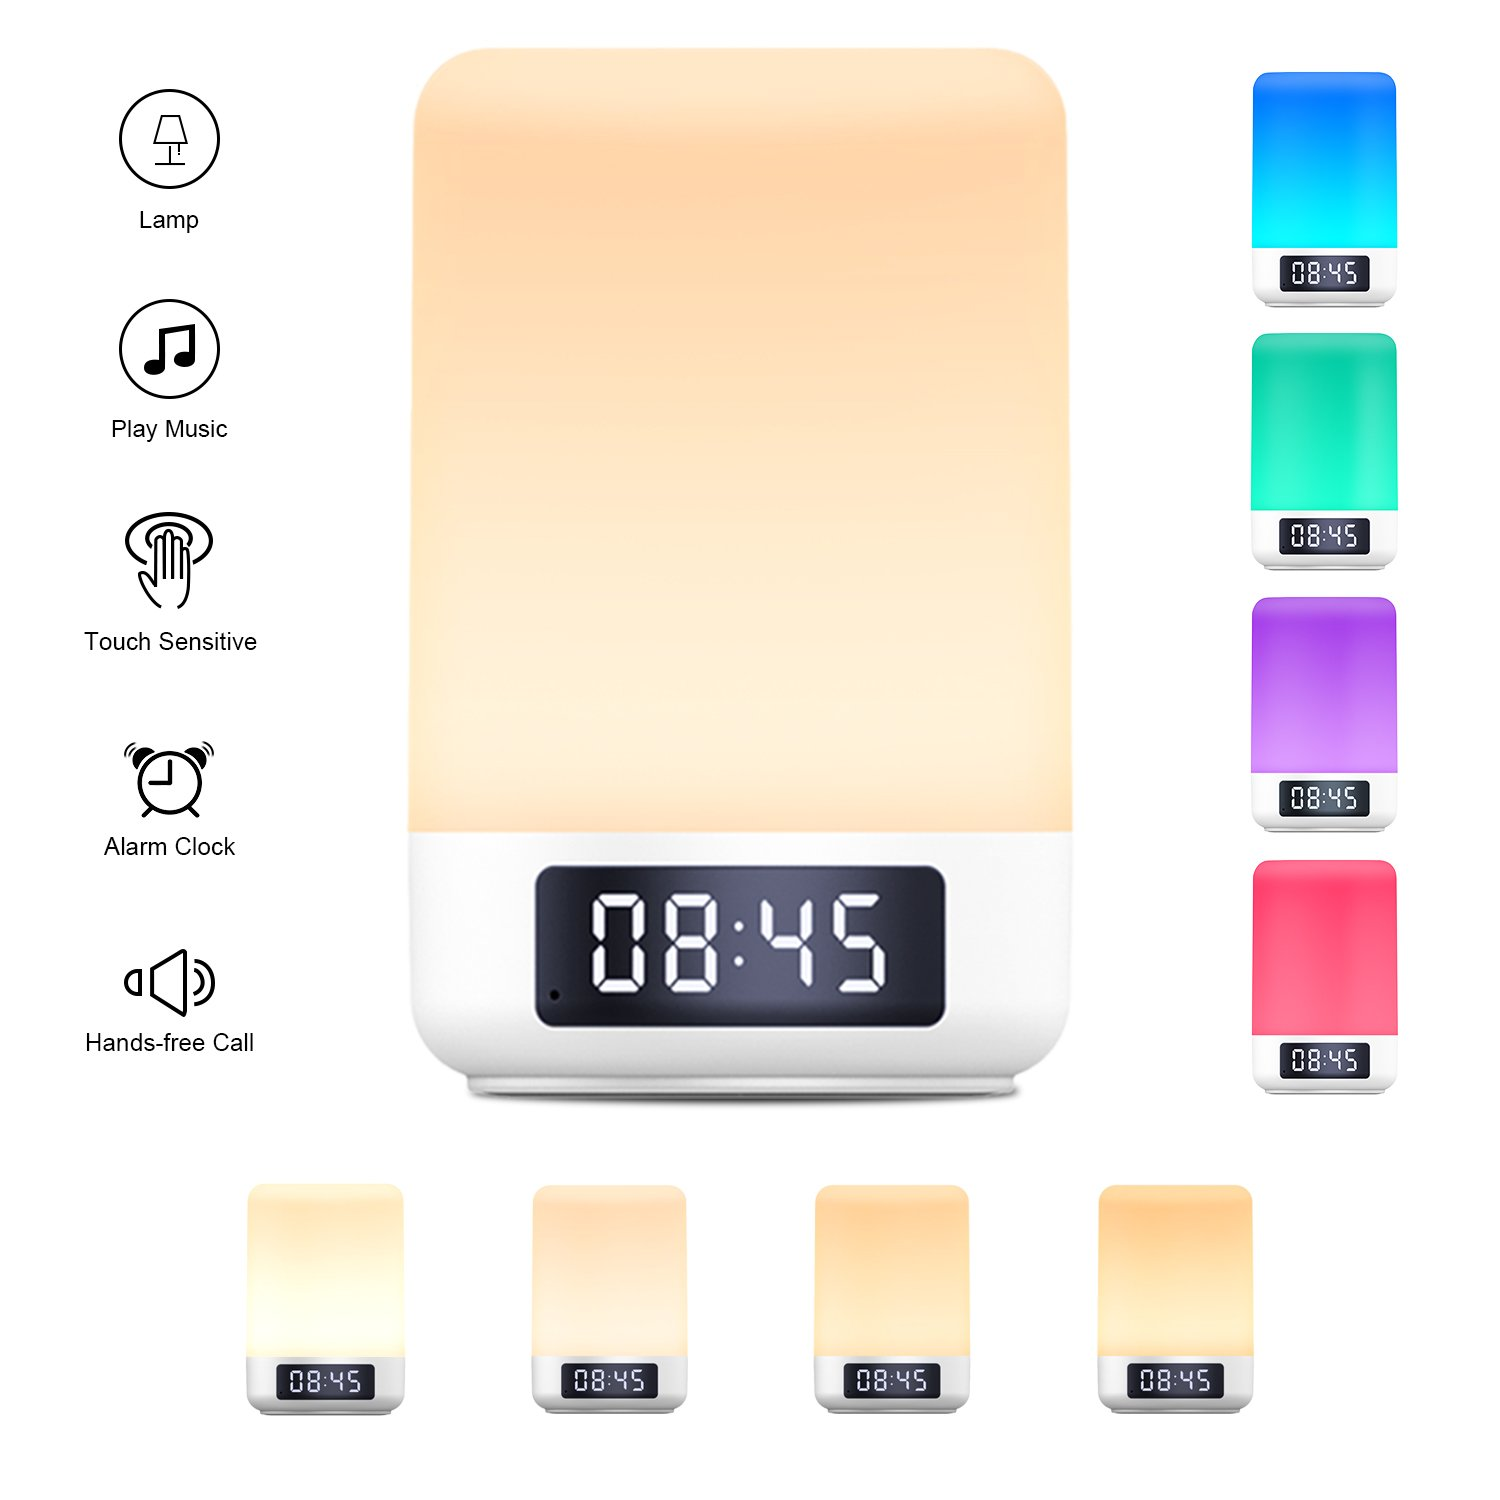 Touch Control Beside Lamp with Wireless Bluetooth Speakers, Yuanguo Wake Up Light Alarm Clock Digital Table Lamp with Night Lights Mood Lights Dimmable Color Changing LED Lights,Support TF Card AUX-In Handsfree Calls for Bedroom Reading Camping bedside li